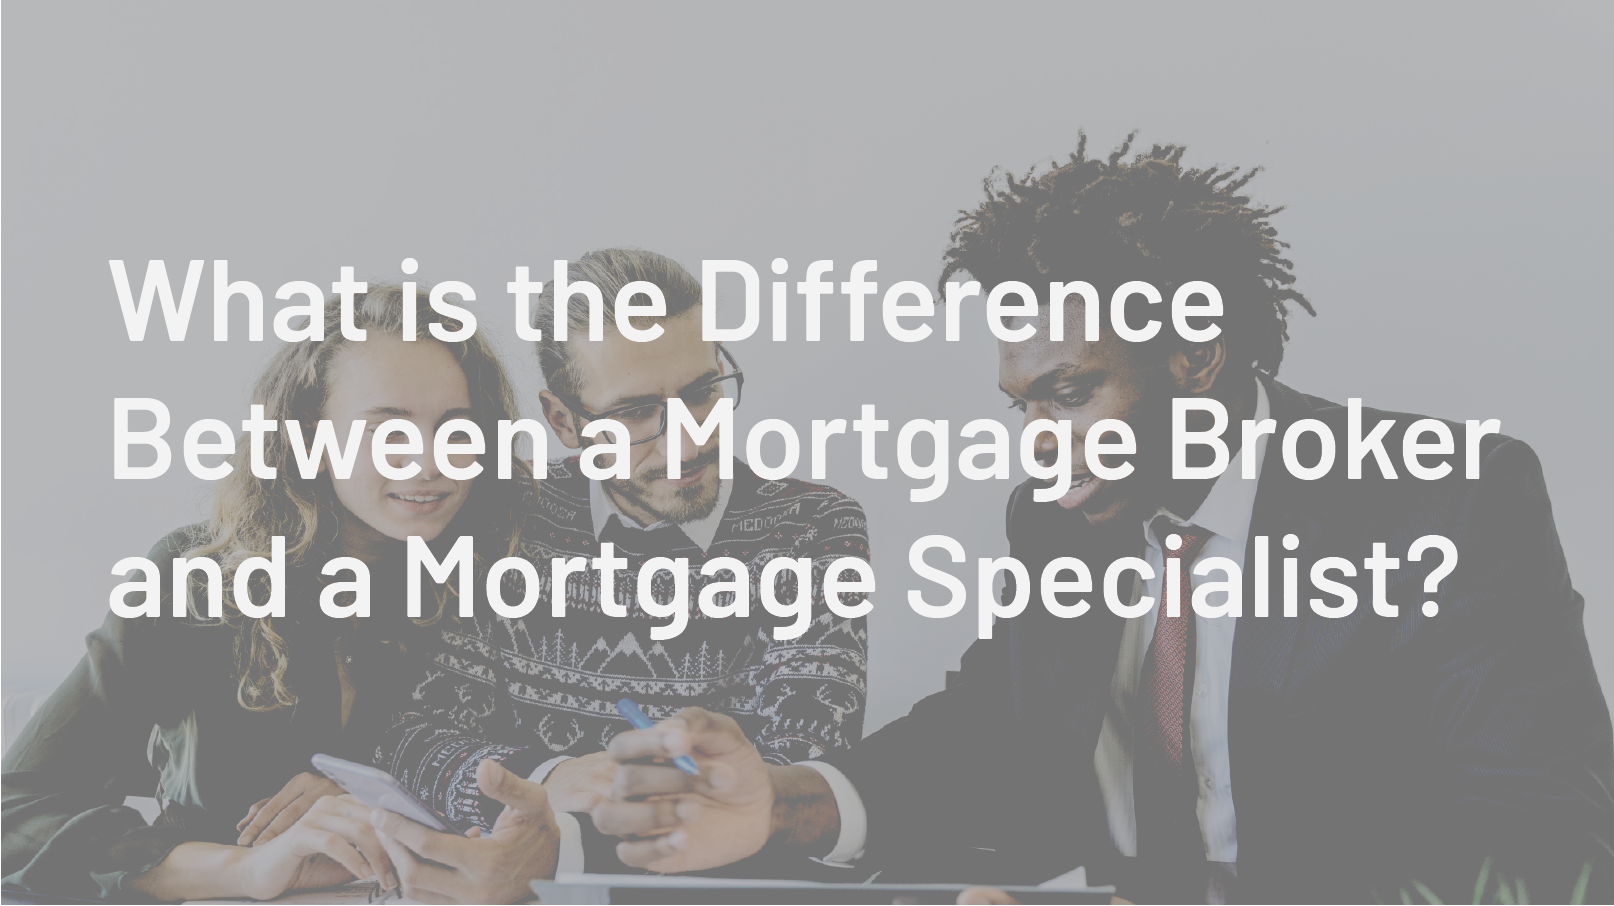 What is the Difference Between a Mortgage Broker and a Mortgage Specialist?